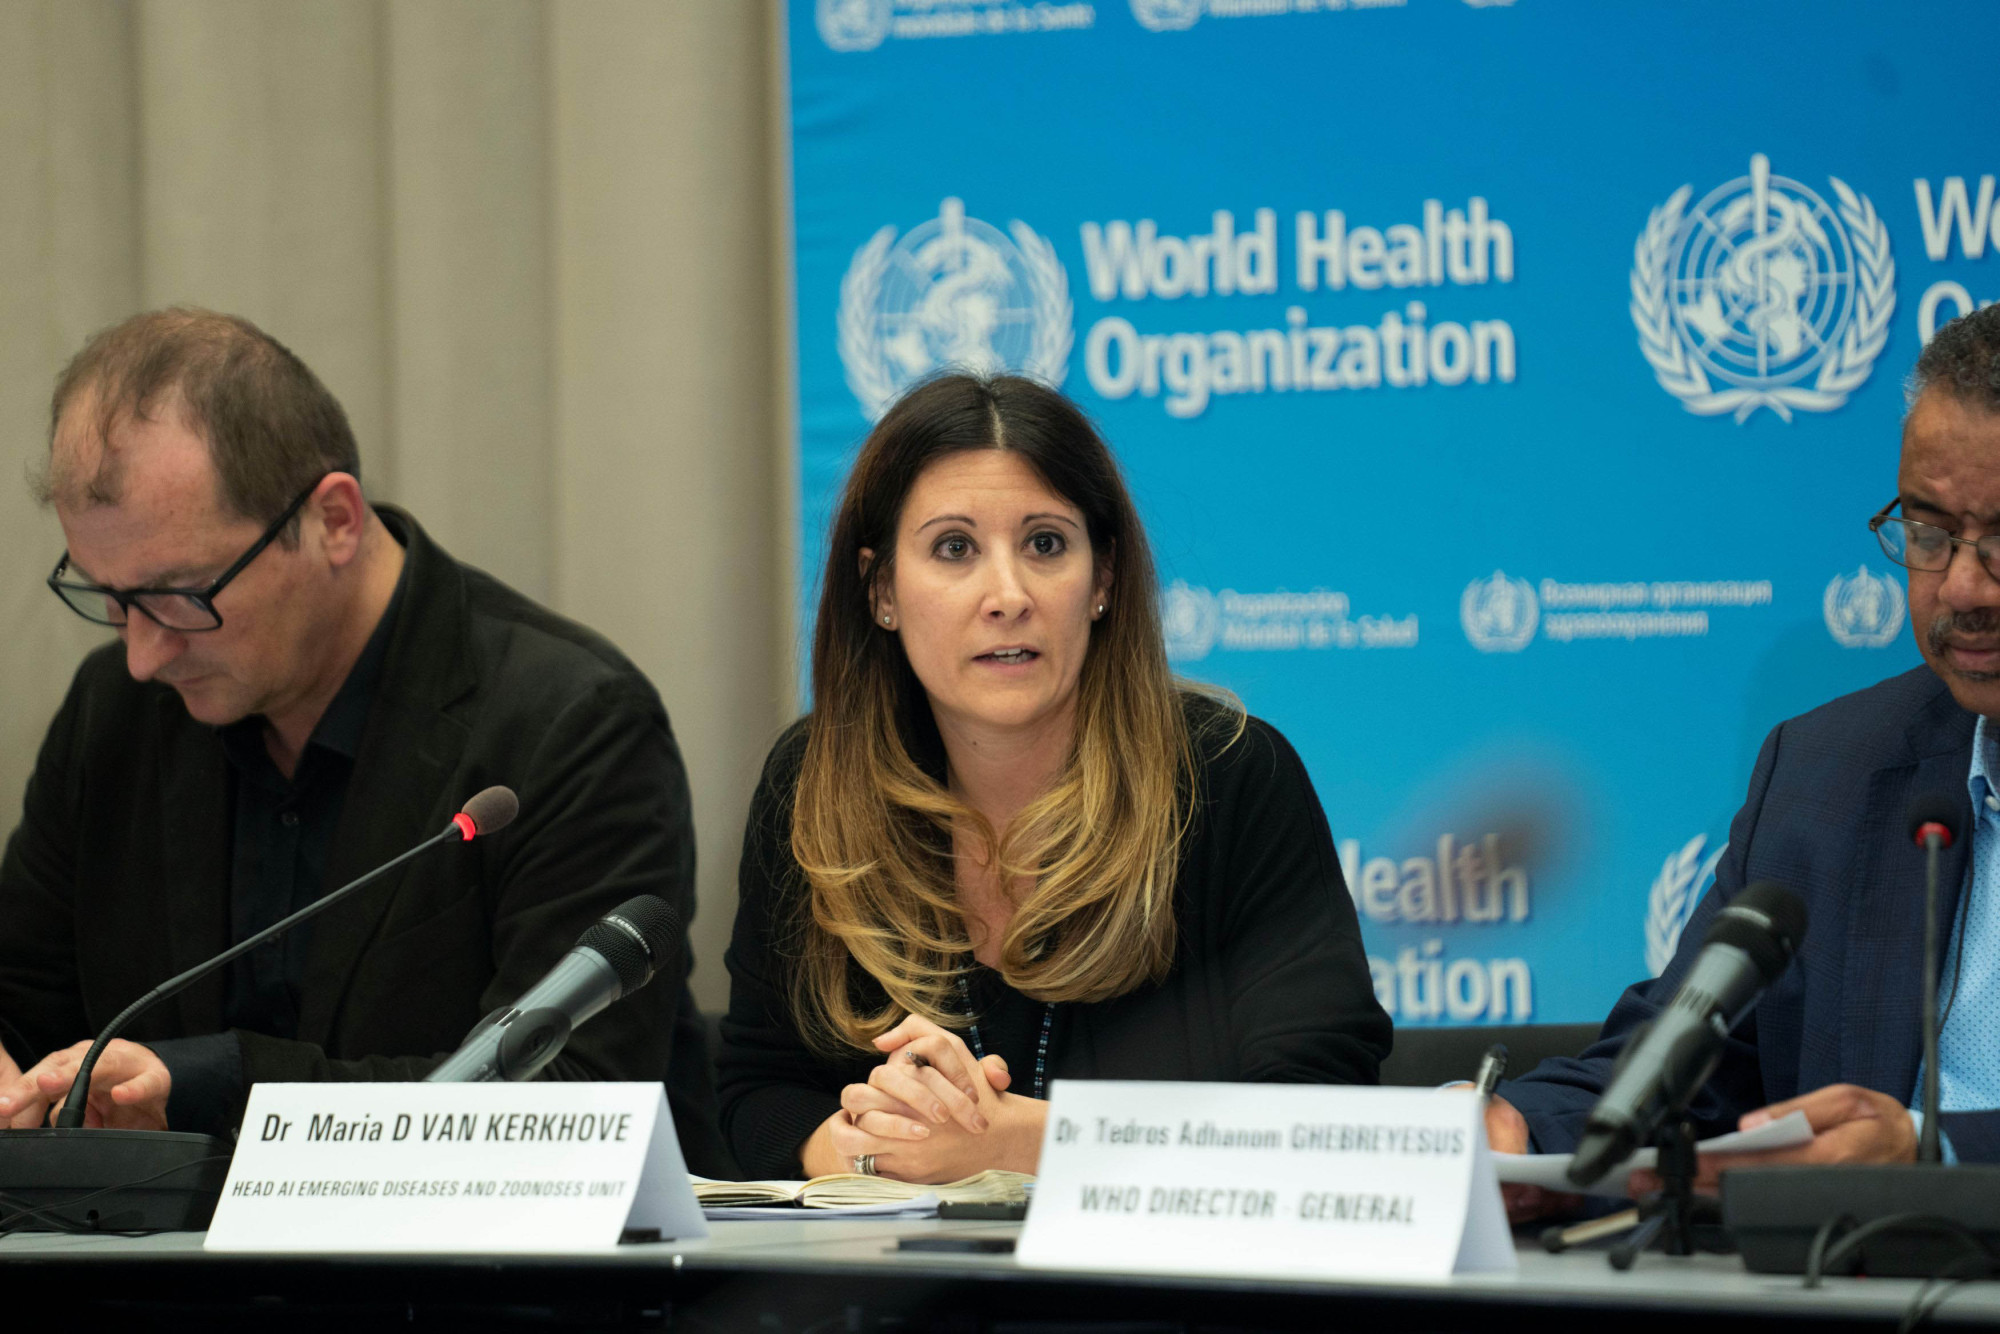 Dr. Maria Van Kerkhove, head of the AI emerging diseases and zoonoses unit at WHO, speaks during a news conference in Geneva on Thursday. | VIA REUTERS